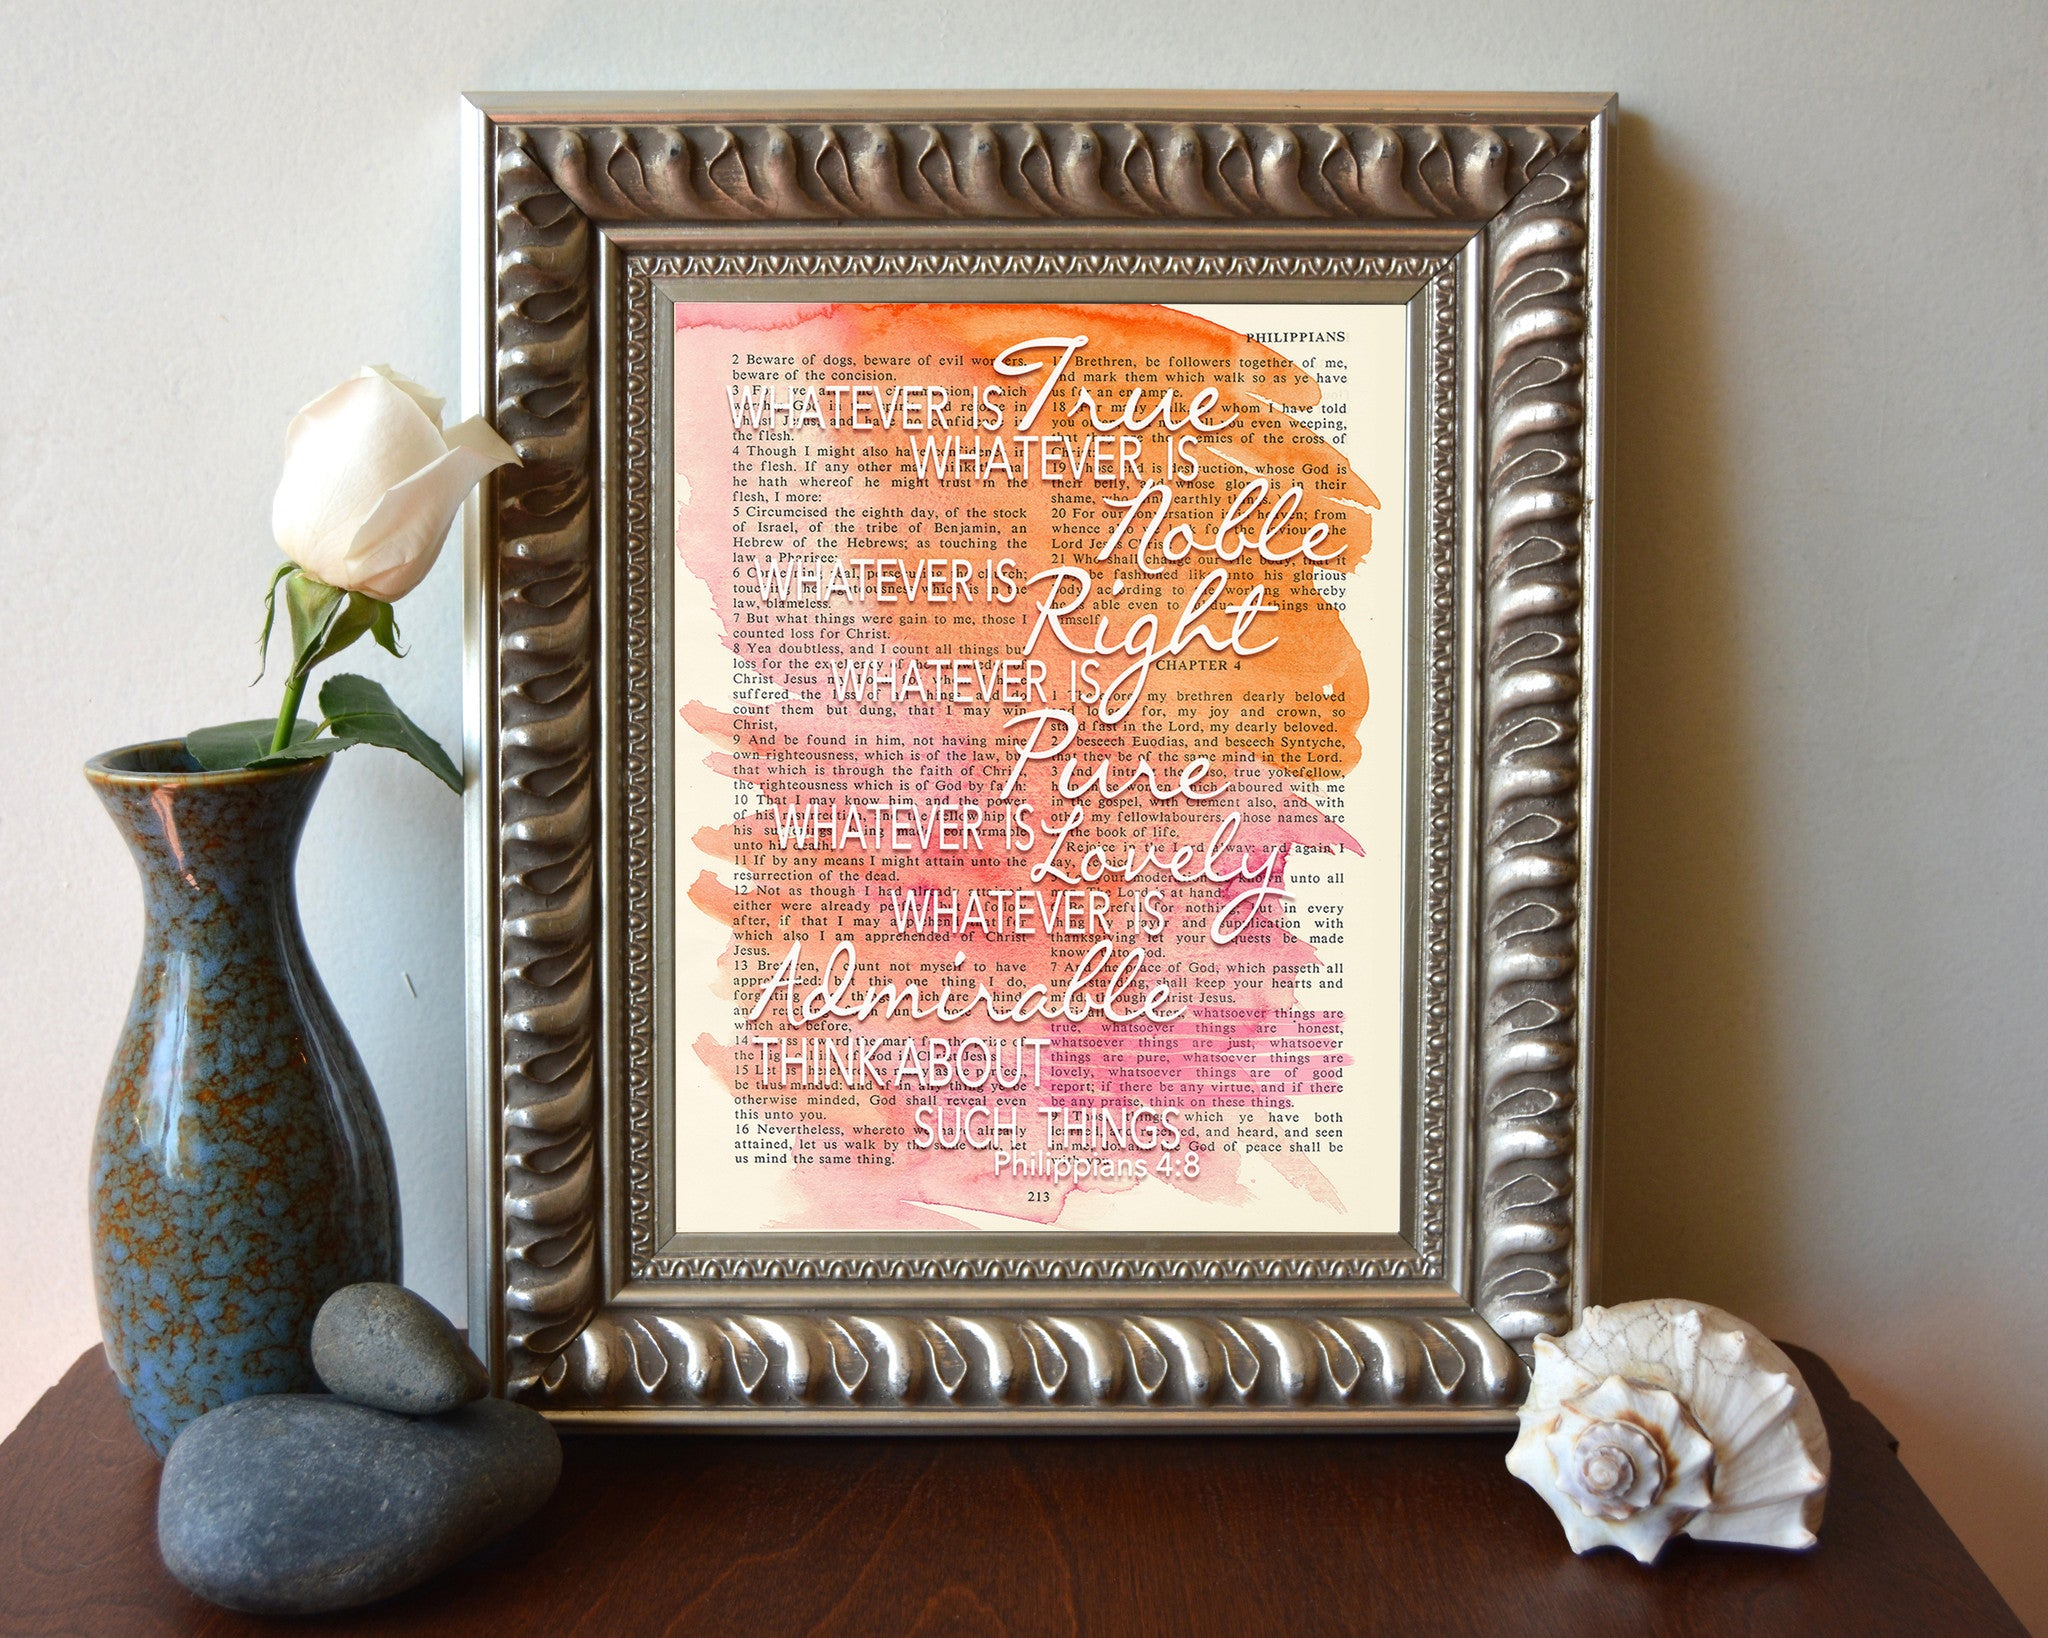 Whatever is True - Philippians 4:8 Bible Page Christian Art